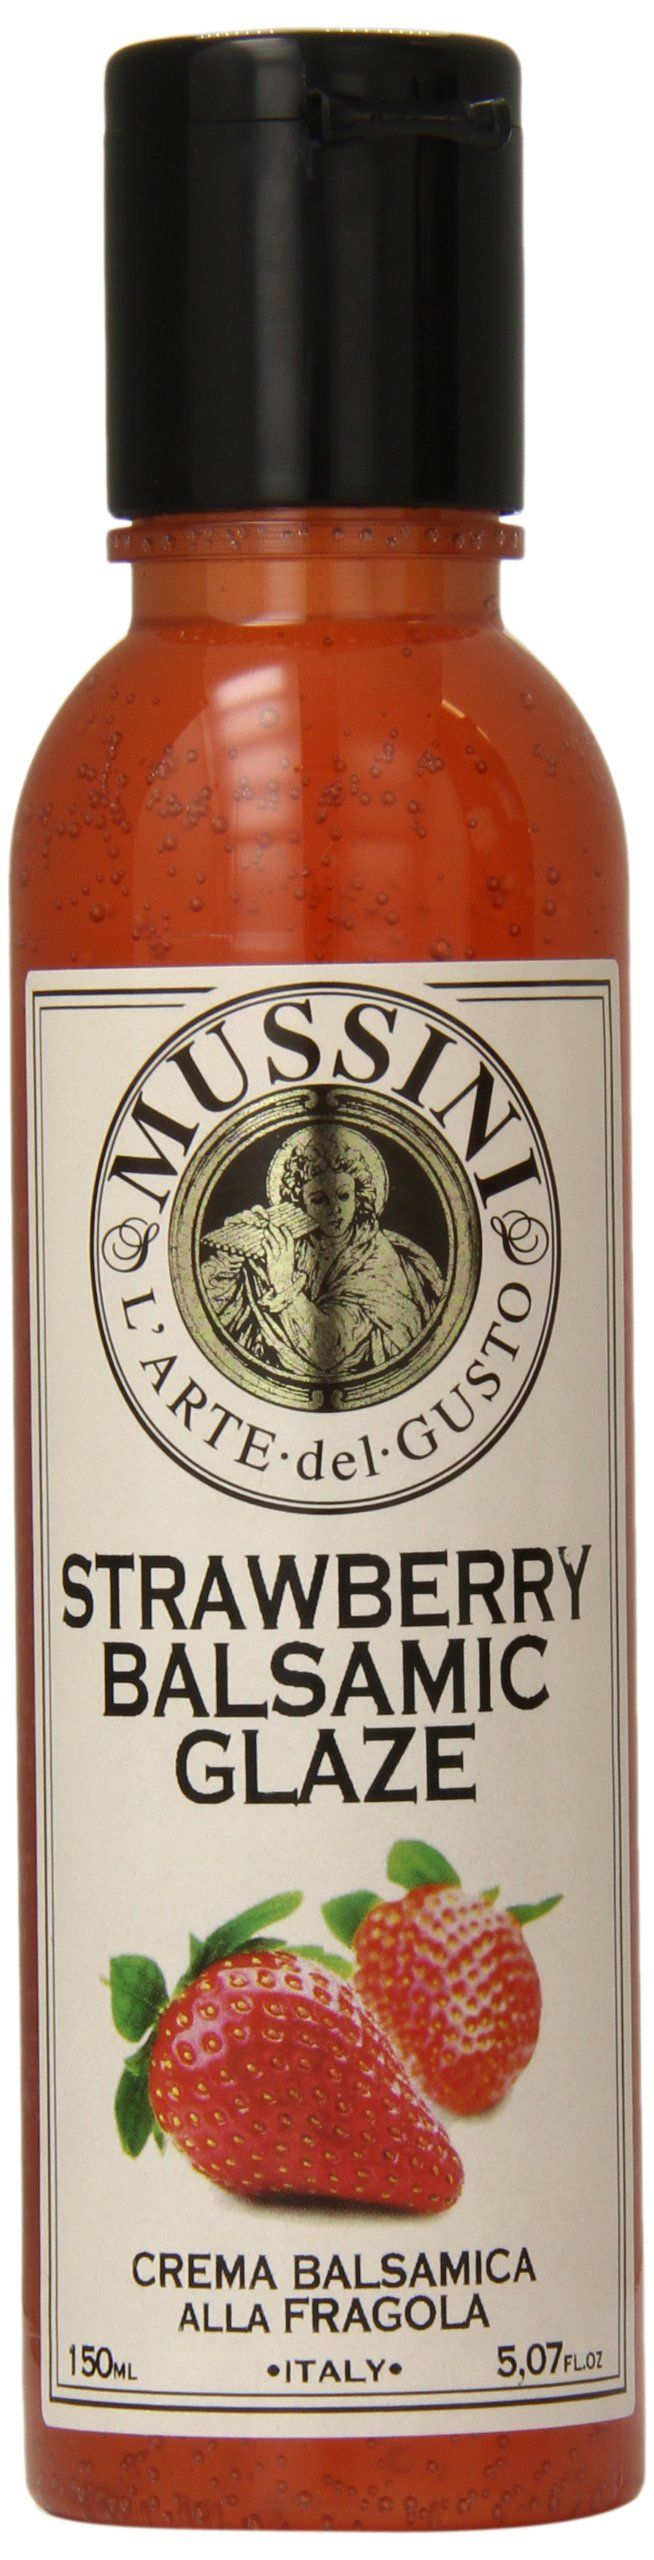 Amazon.com : Mussini Glaze, Strawberry, 5.1 Ounce, 5.1 Ounce : Grocery & Gourmet Food